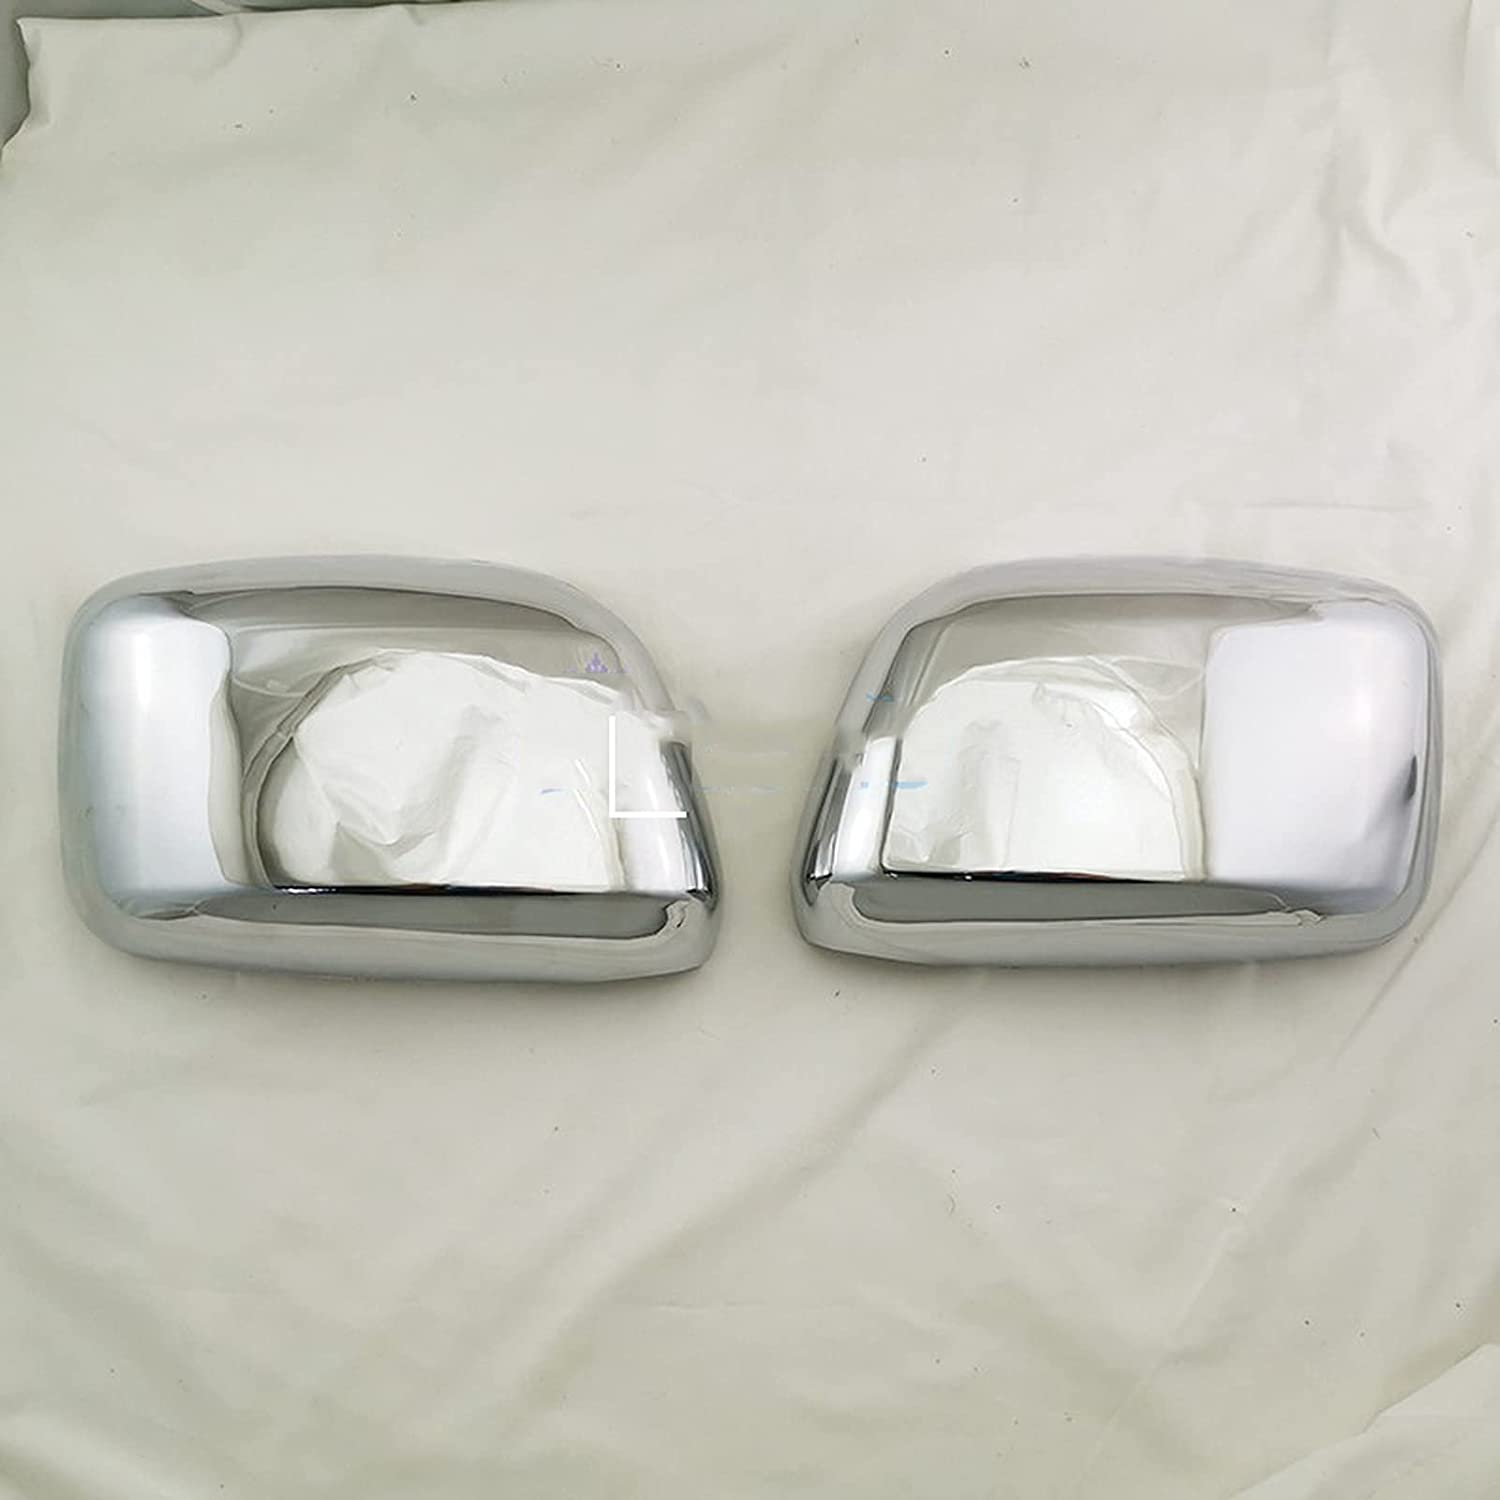 ASHDelk Door Mirror Cover Rearview Overlay Caps View Milwaukee Mall Max 56% OFF Rear S Side